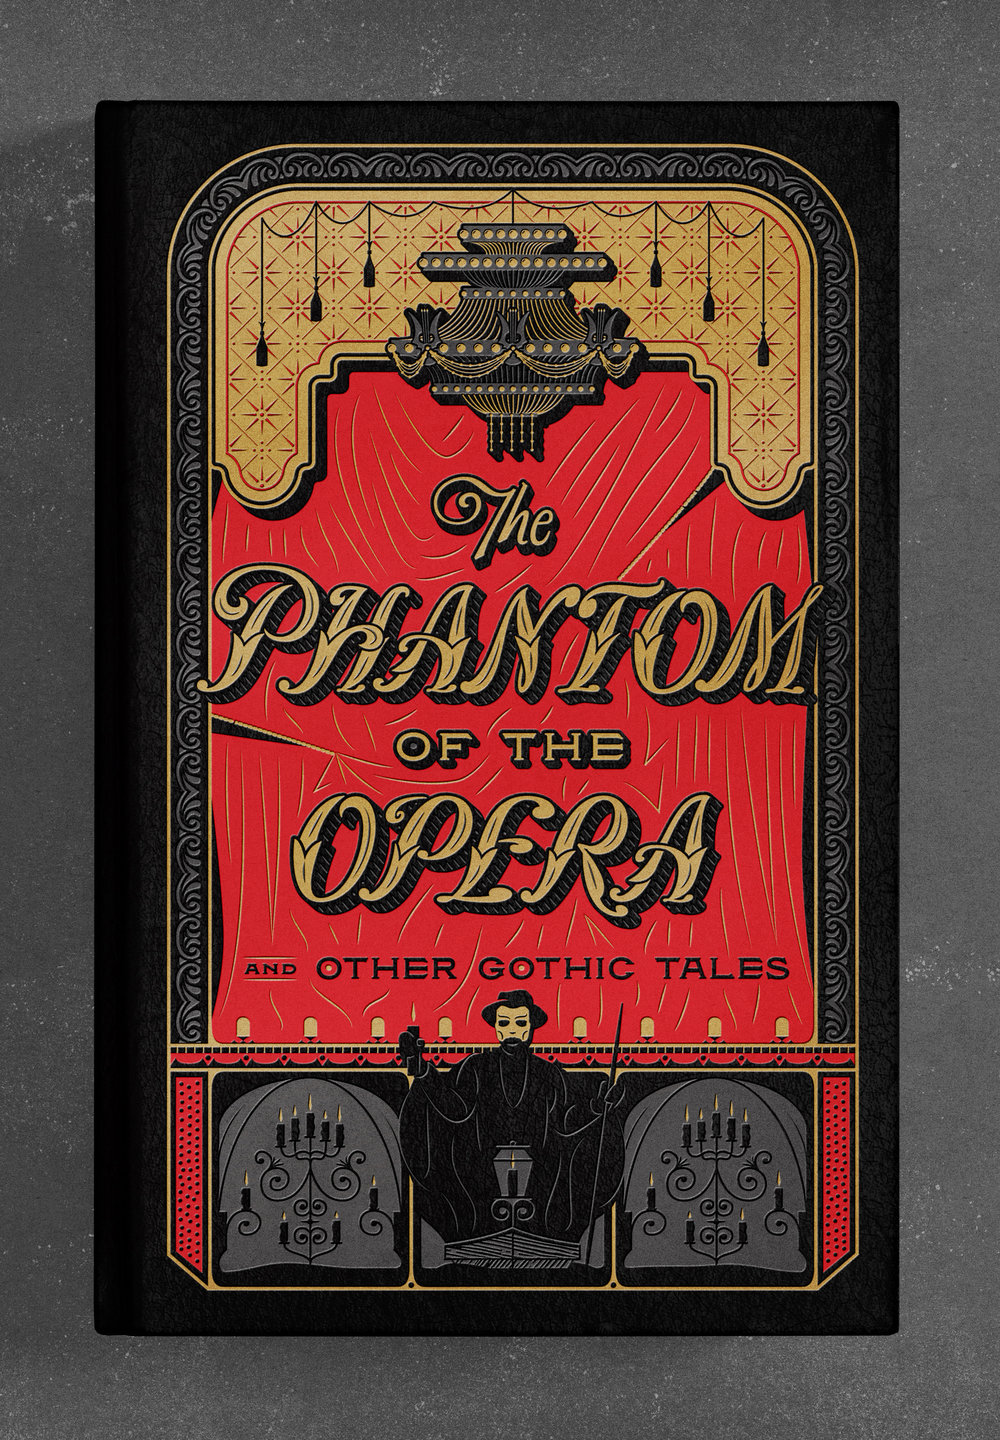 Phantom_CoverComp_4.6_Cropped.jpg